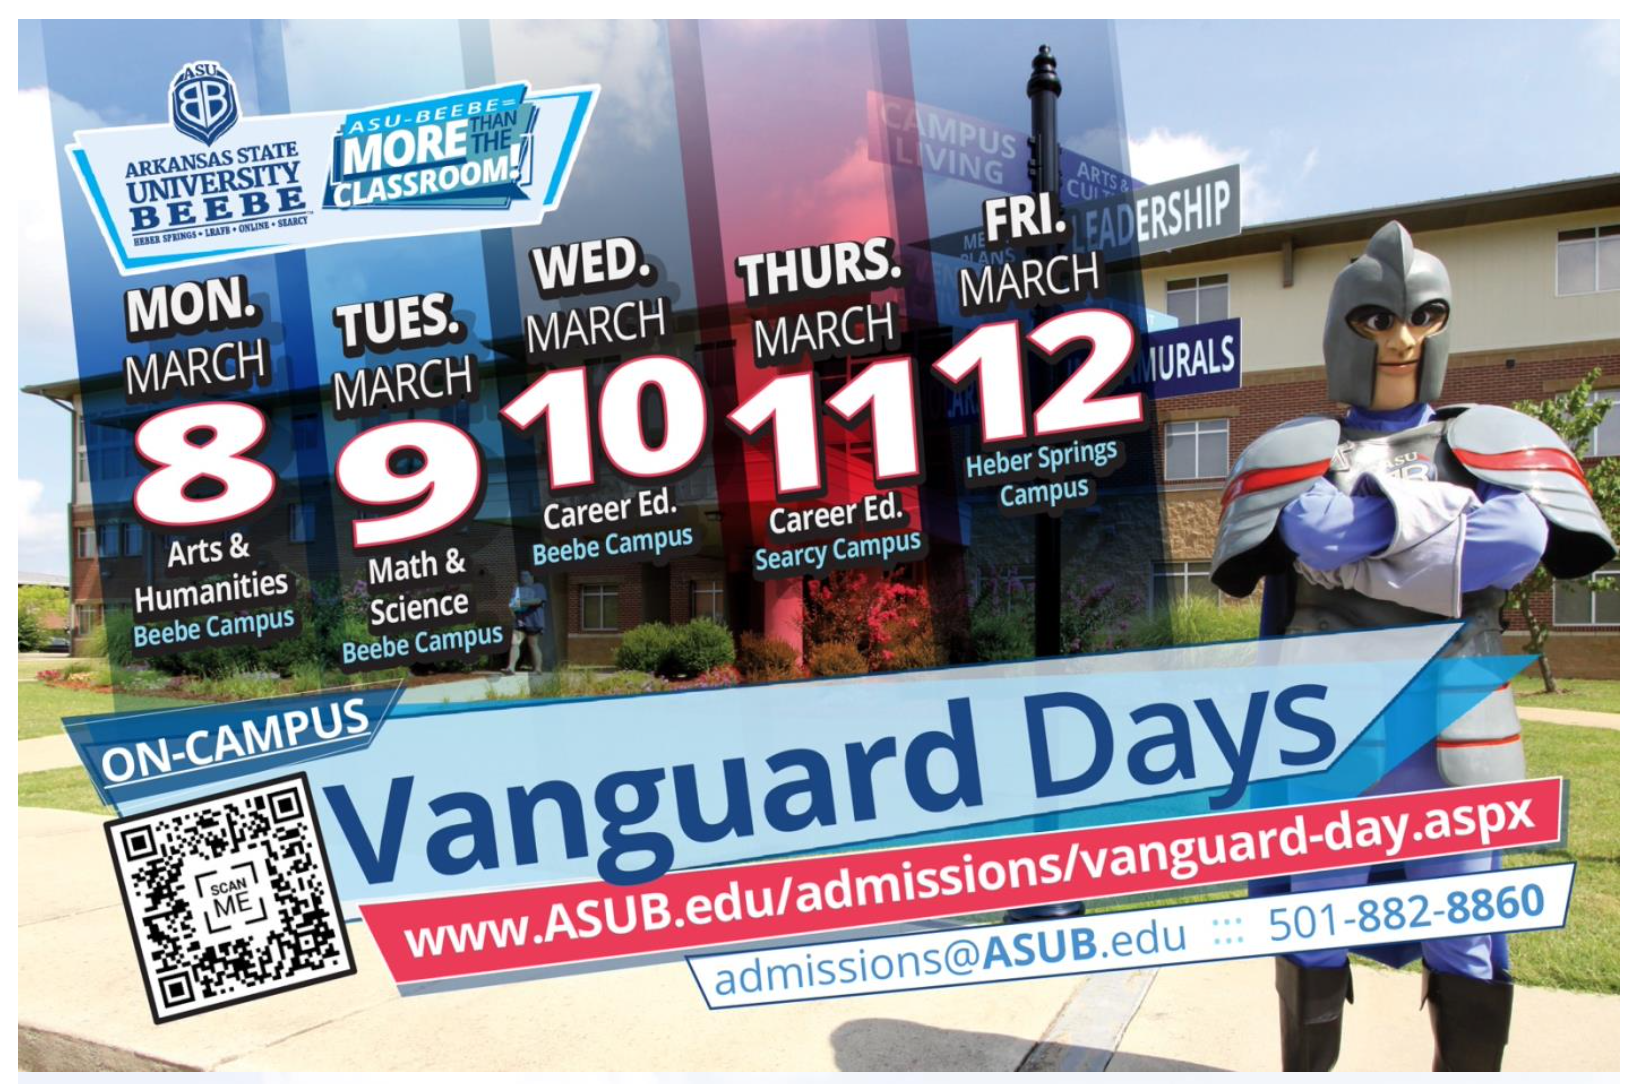 Vanguard Days college preview visit event promotion graphic